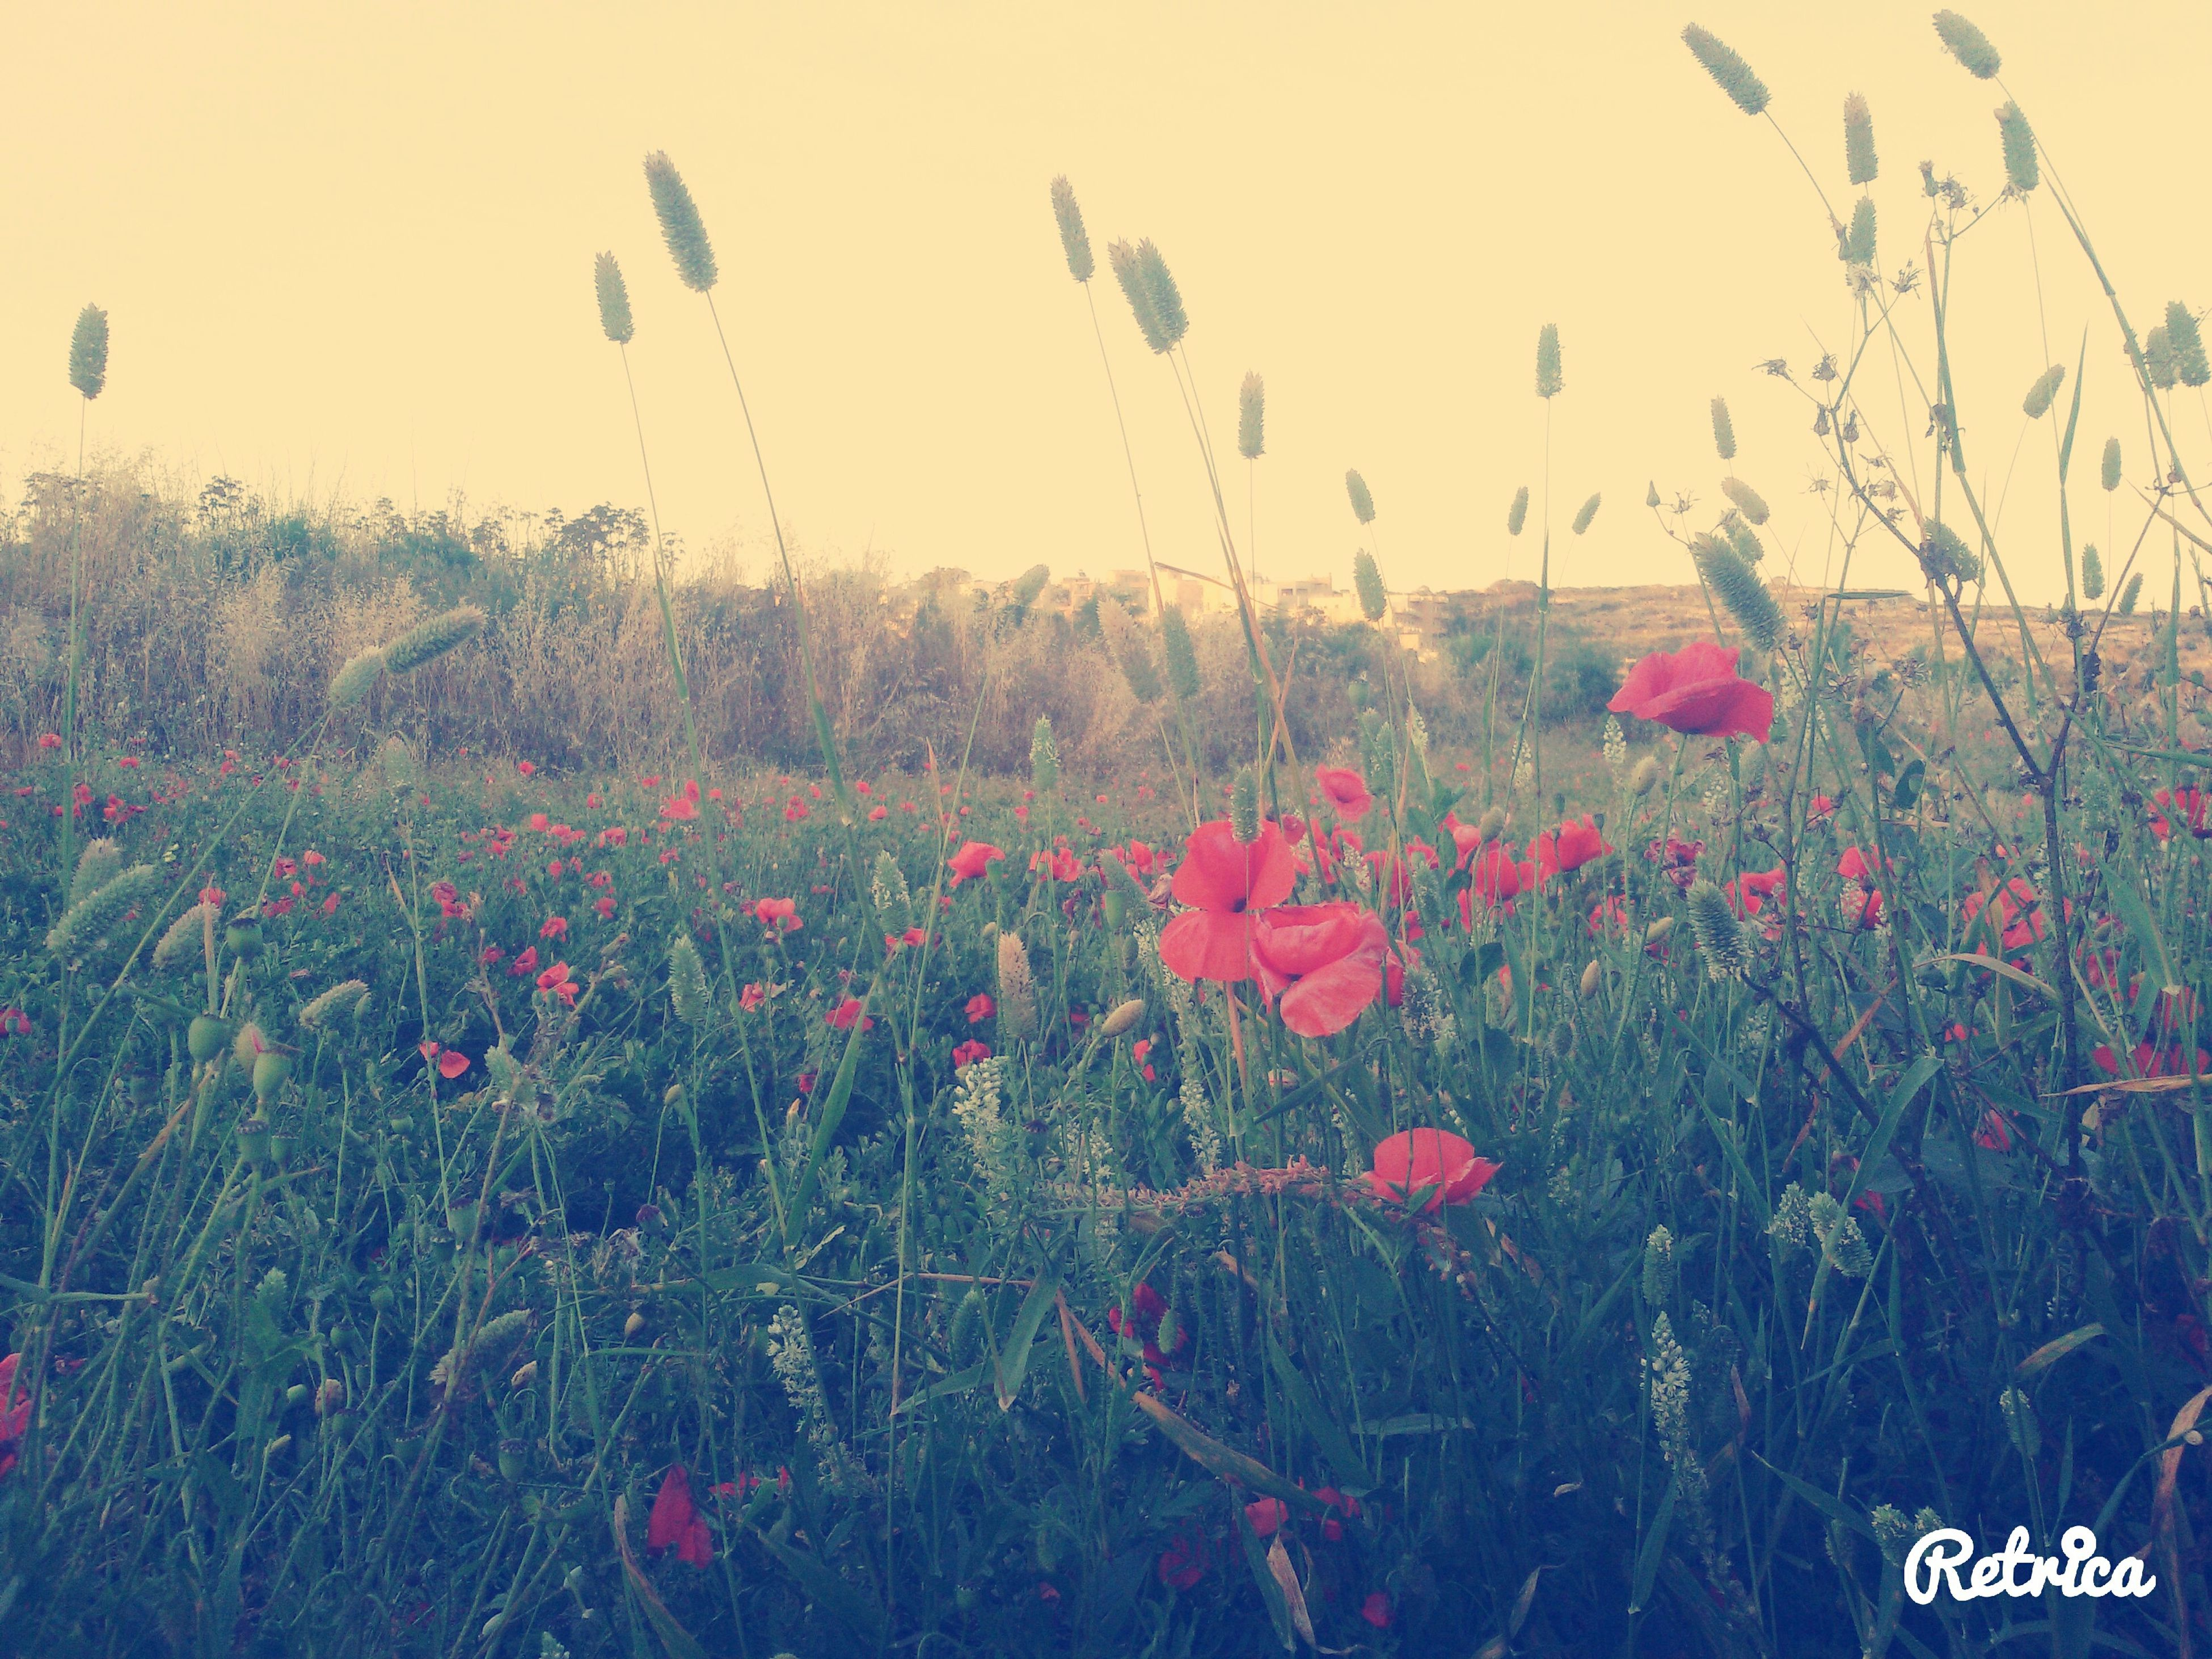 flower, growth, field, beauty in nature, freshness, plant, nature, blooming, landscape, red, sky, tranquility, fragility, tranquil scene, outdoors, scenics, no people, day, abundance, stem